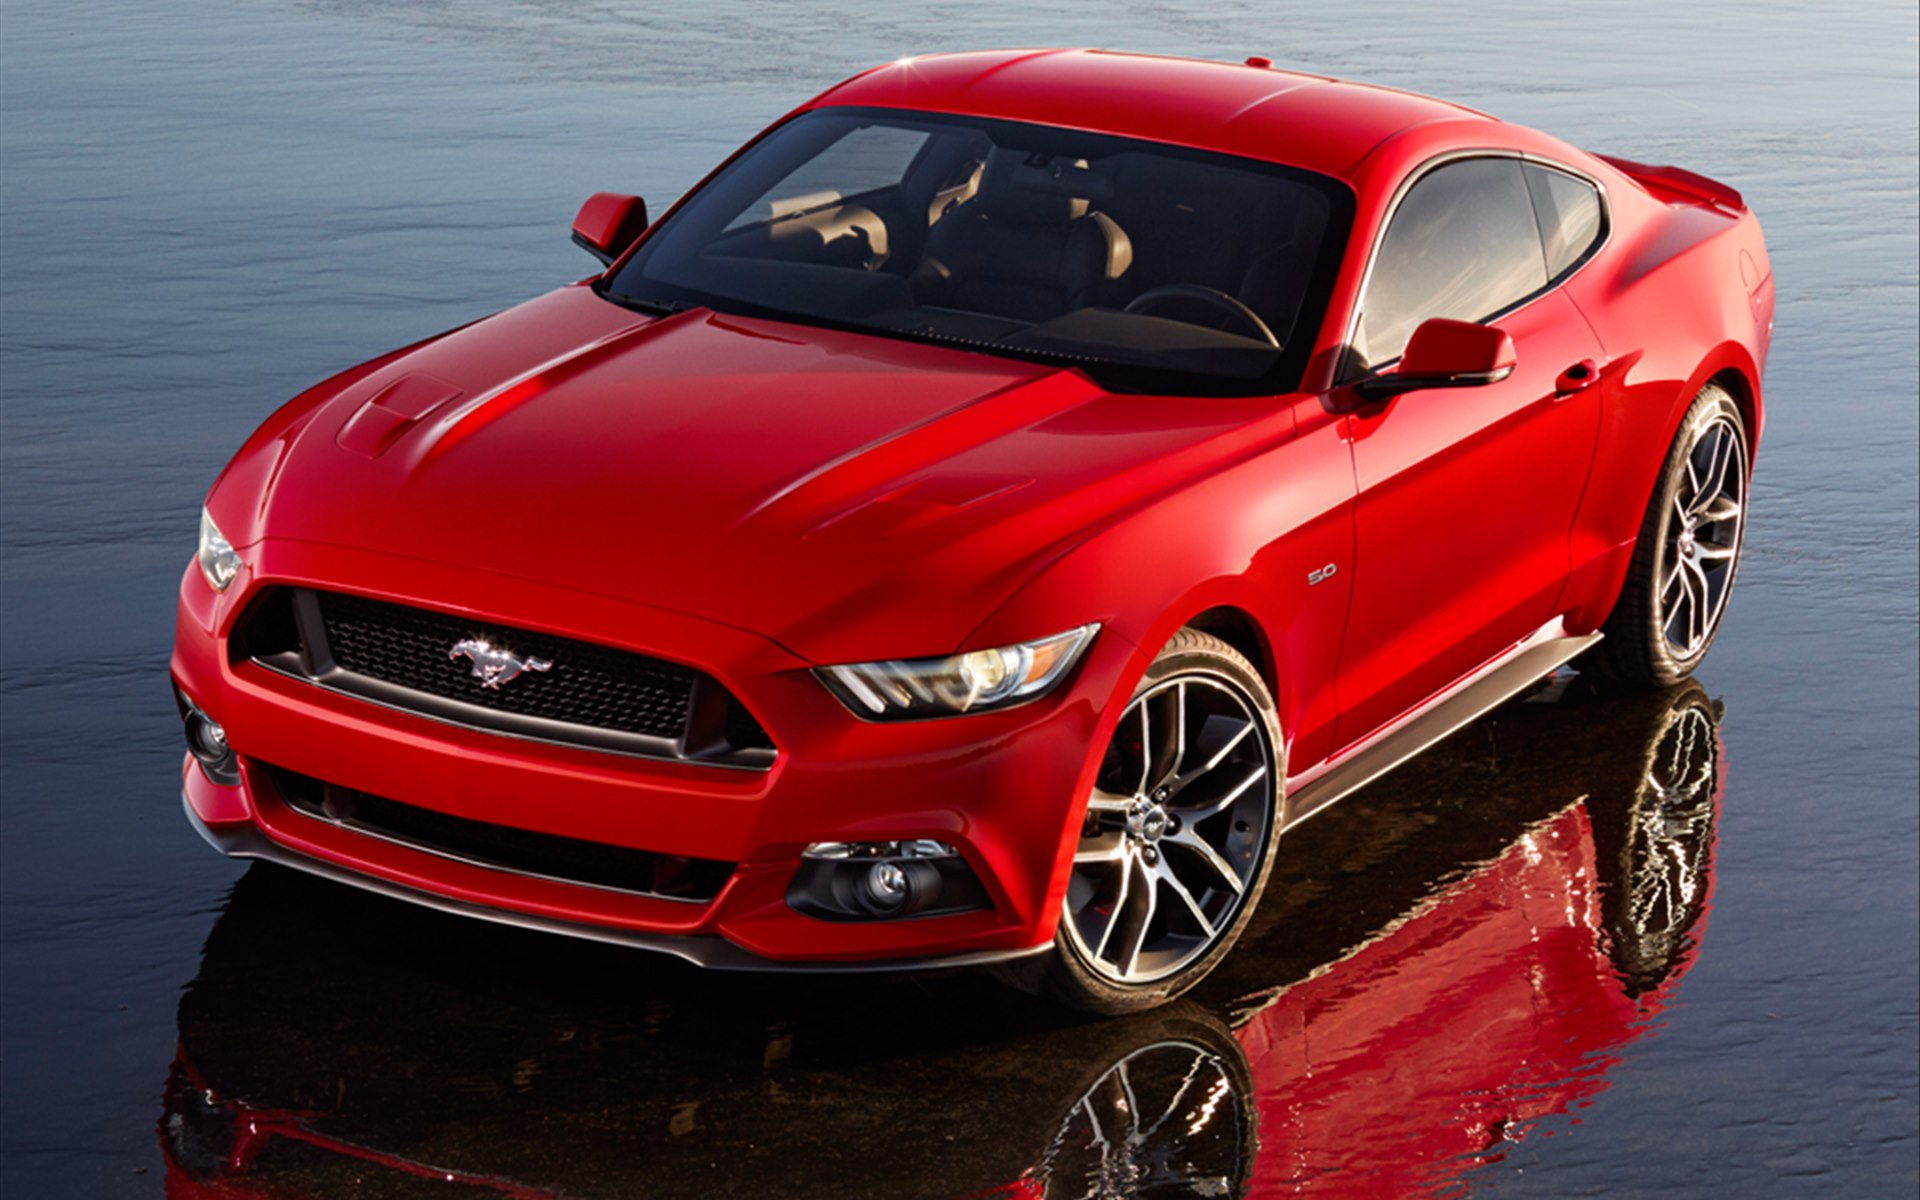 2019 Ford Mustang SVO photo - 3